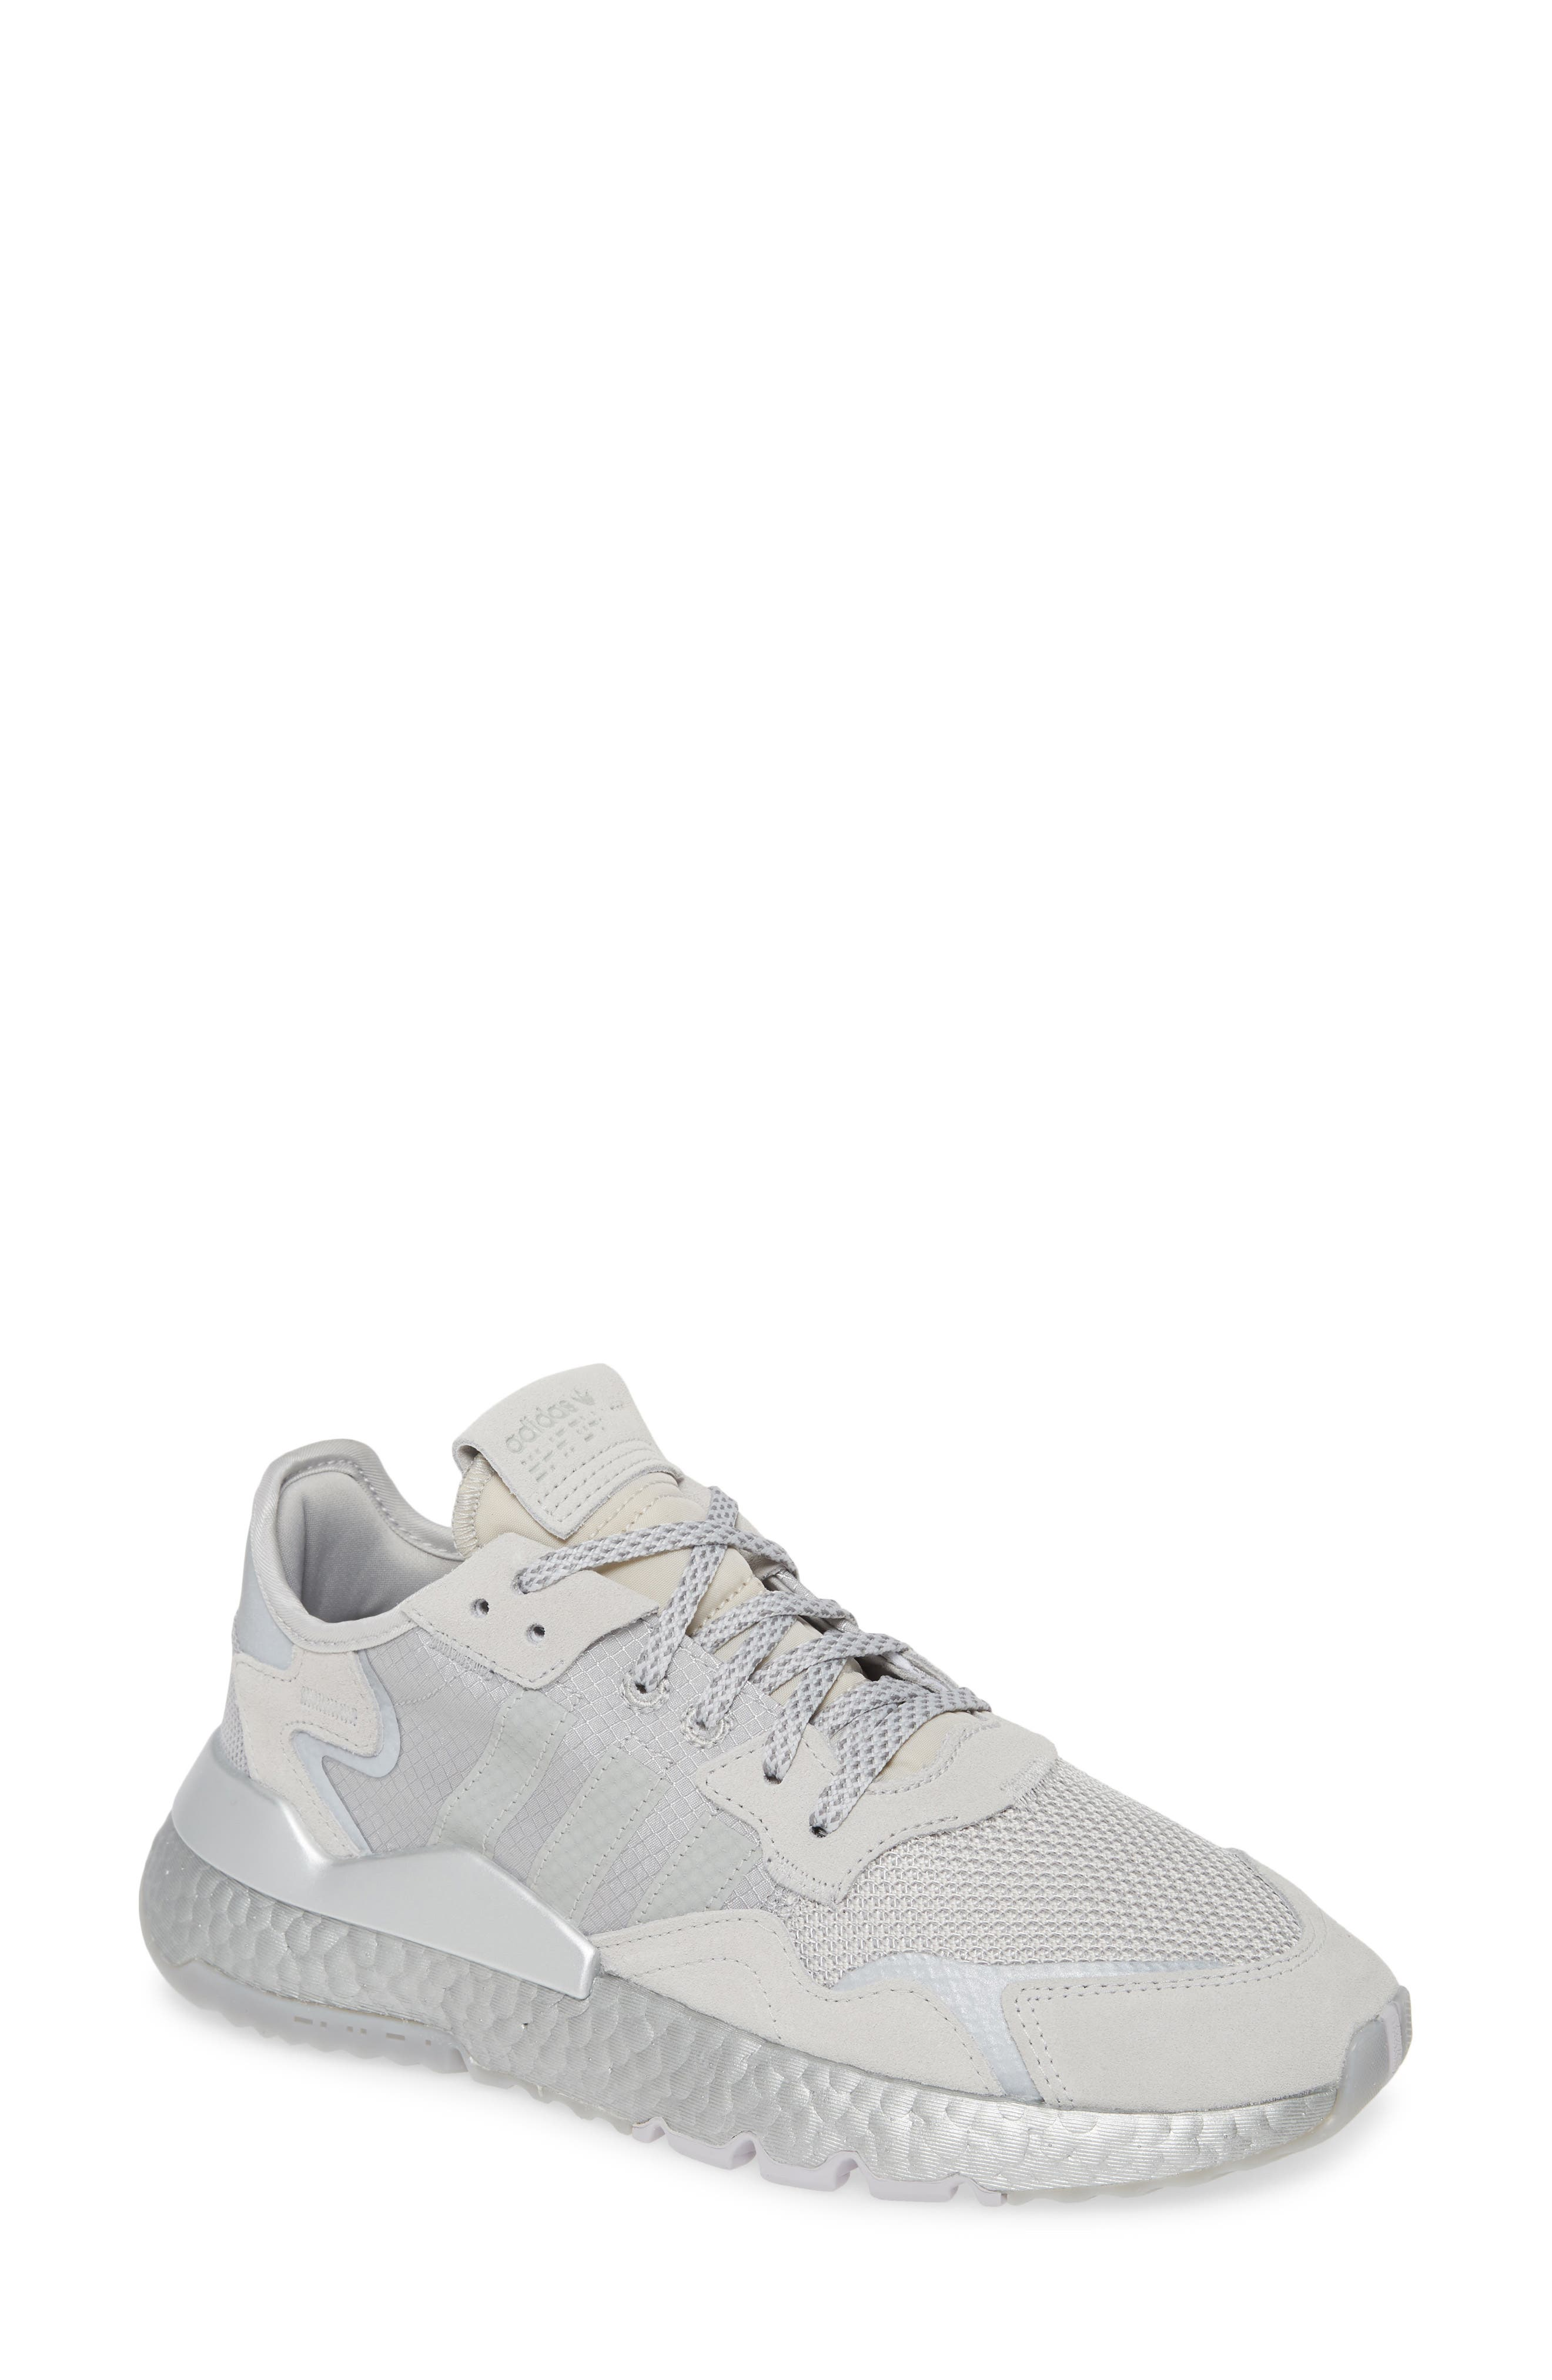 Mesh, ripstop nylon and responsive Boost cushioning update a heritage running shoe that\'s reborn as a lightweight sneaker that\'s easy to crush and pack. A stabilizing heel cup and grippy insets in the tread keep you on your feet day or night. Style Name: Adidas Nite Jogger Sneaker (Women). Style Number: 5748006 6. Available in stores.